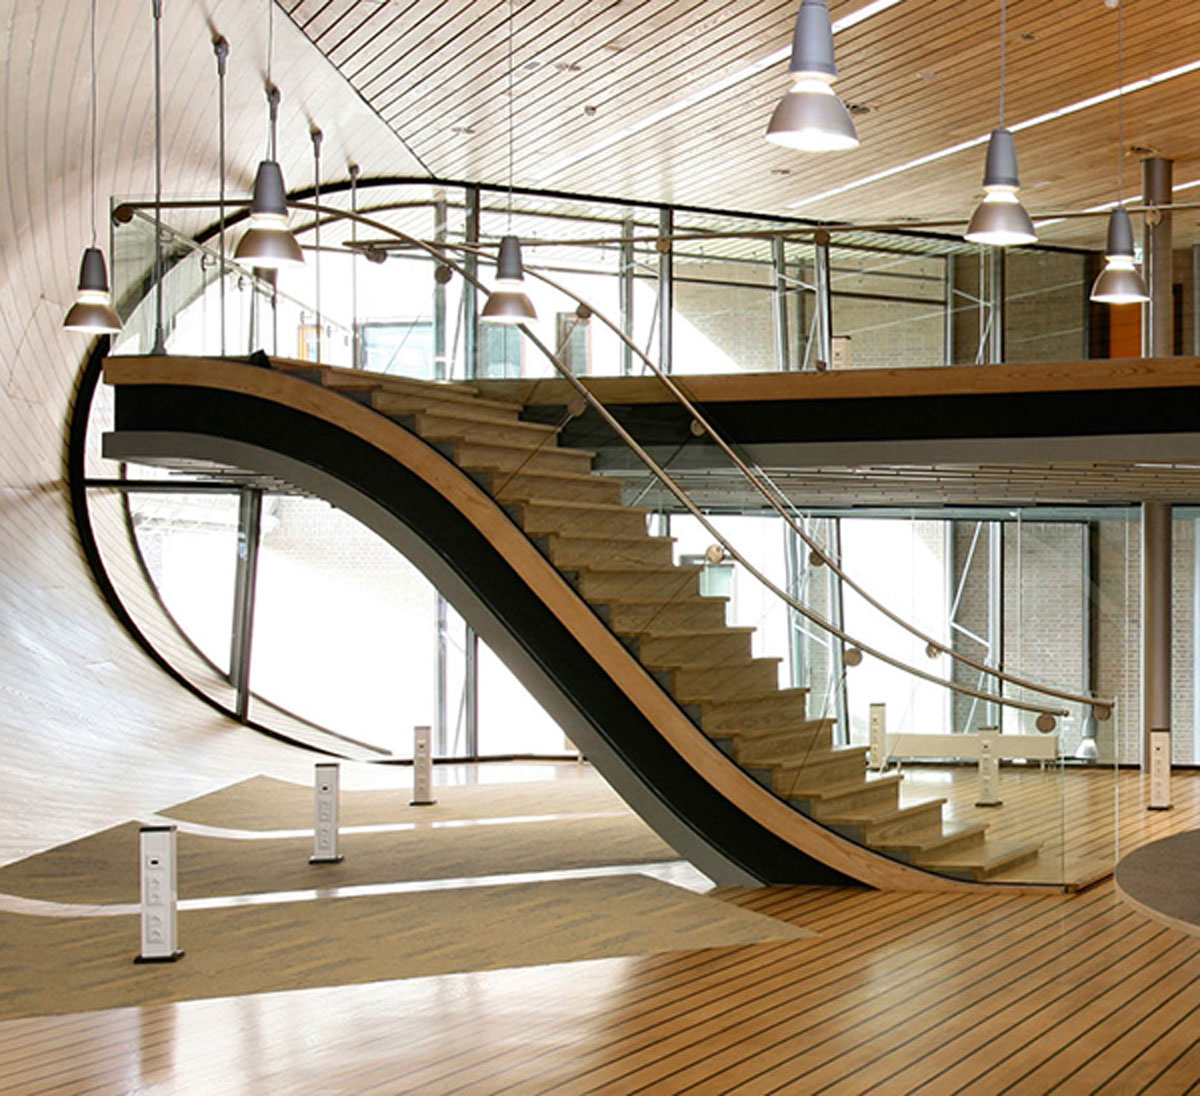 14 Staircases Design Ideas: Modern Contemporary Staircase Interior Design